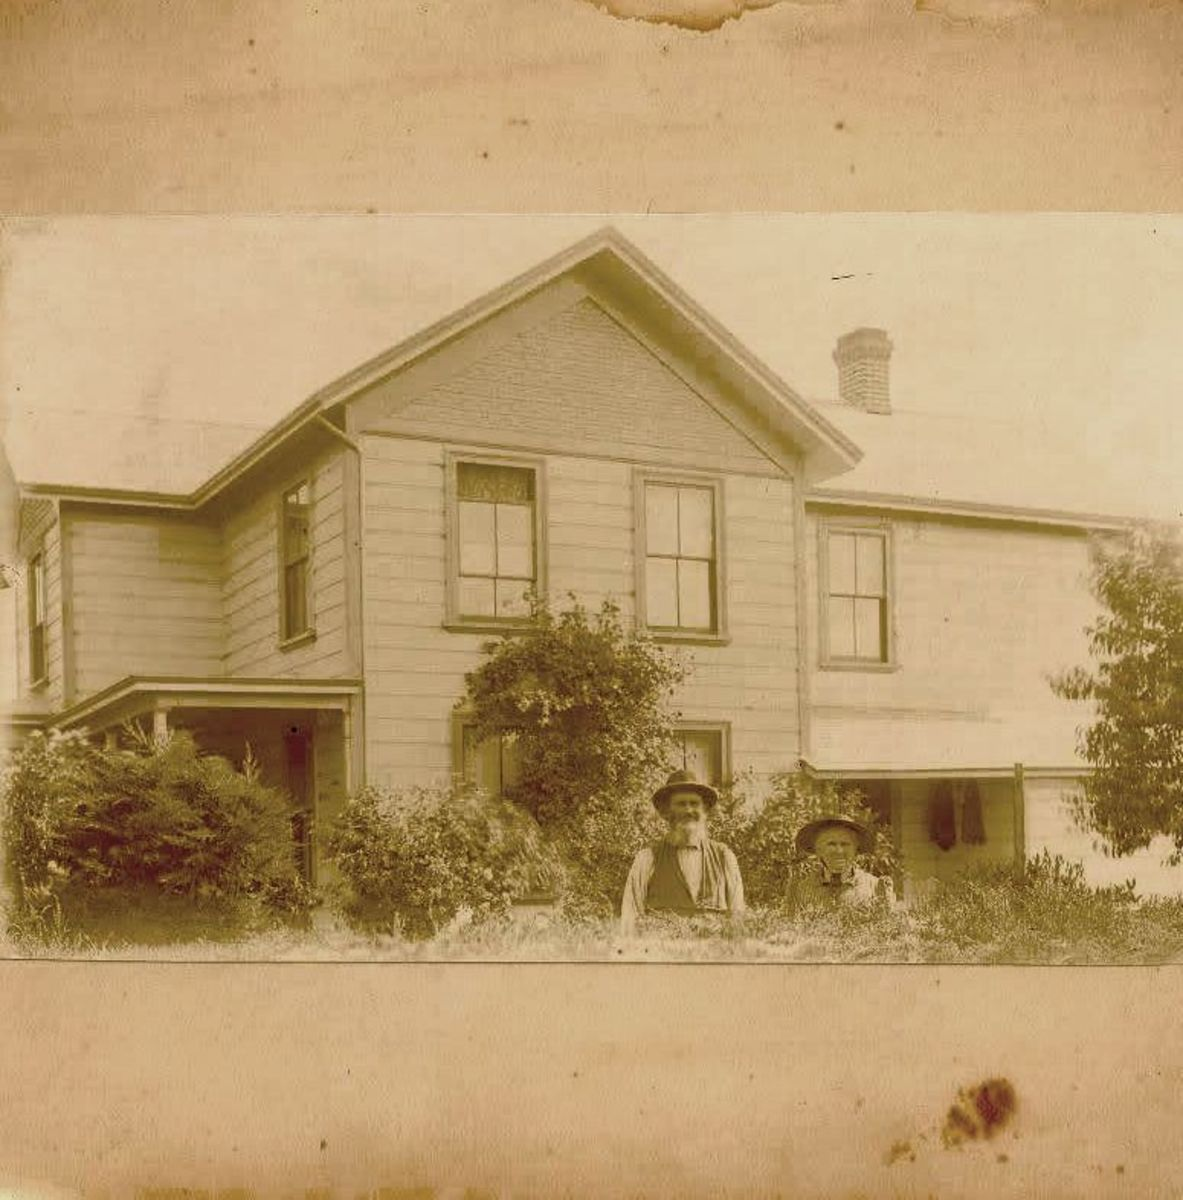 Home of John and Mary Magdalena Bollinger in San Jose, California.